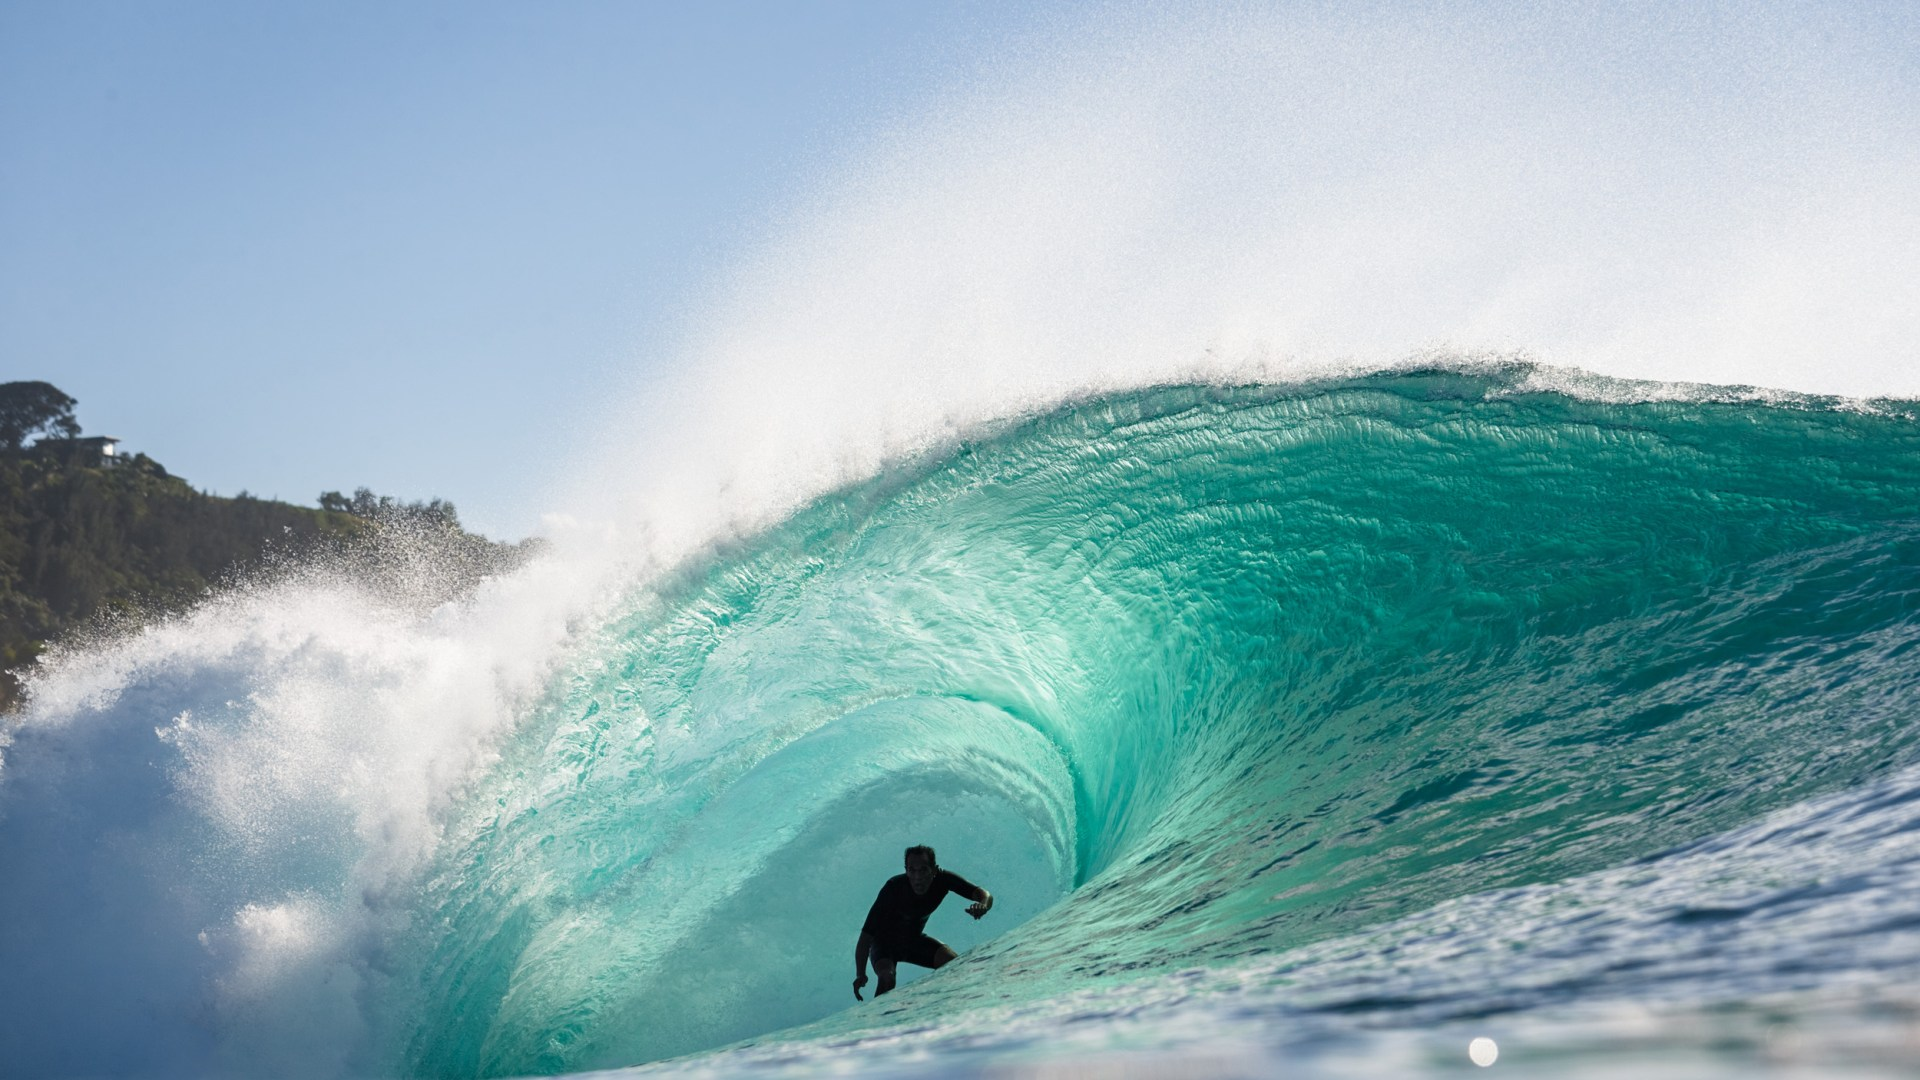 Dream Run Of Swell For North Shore Surfers Surfer Magazine